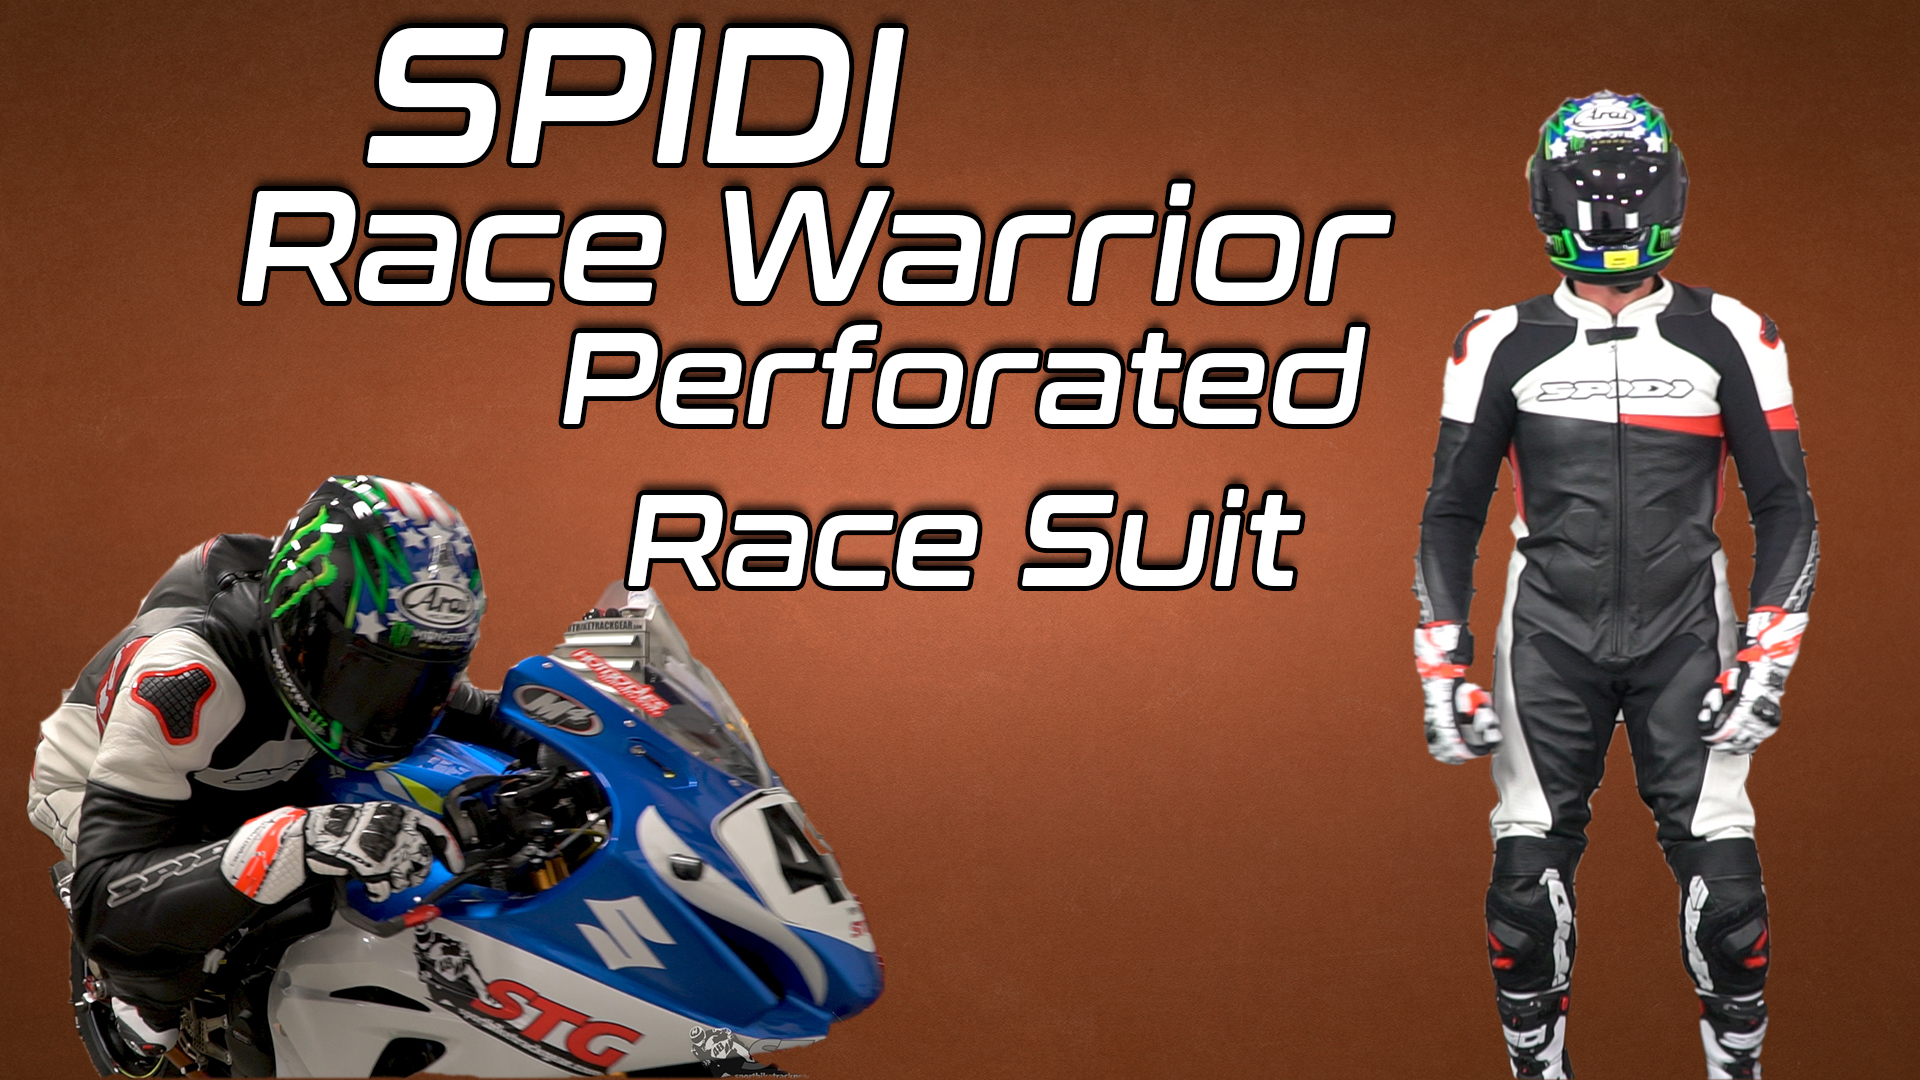 Spidi Race Warrior Perforated Race Suit